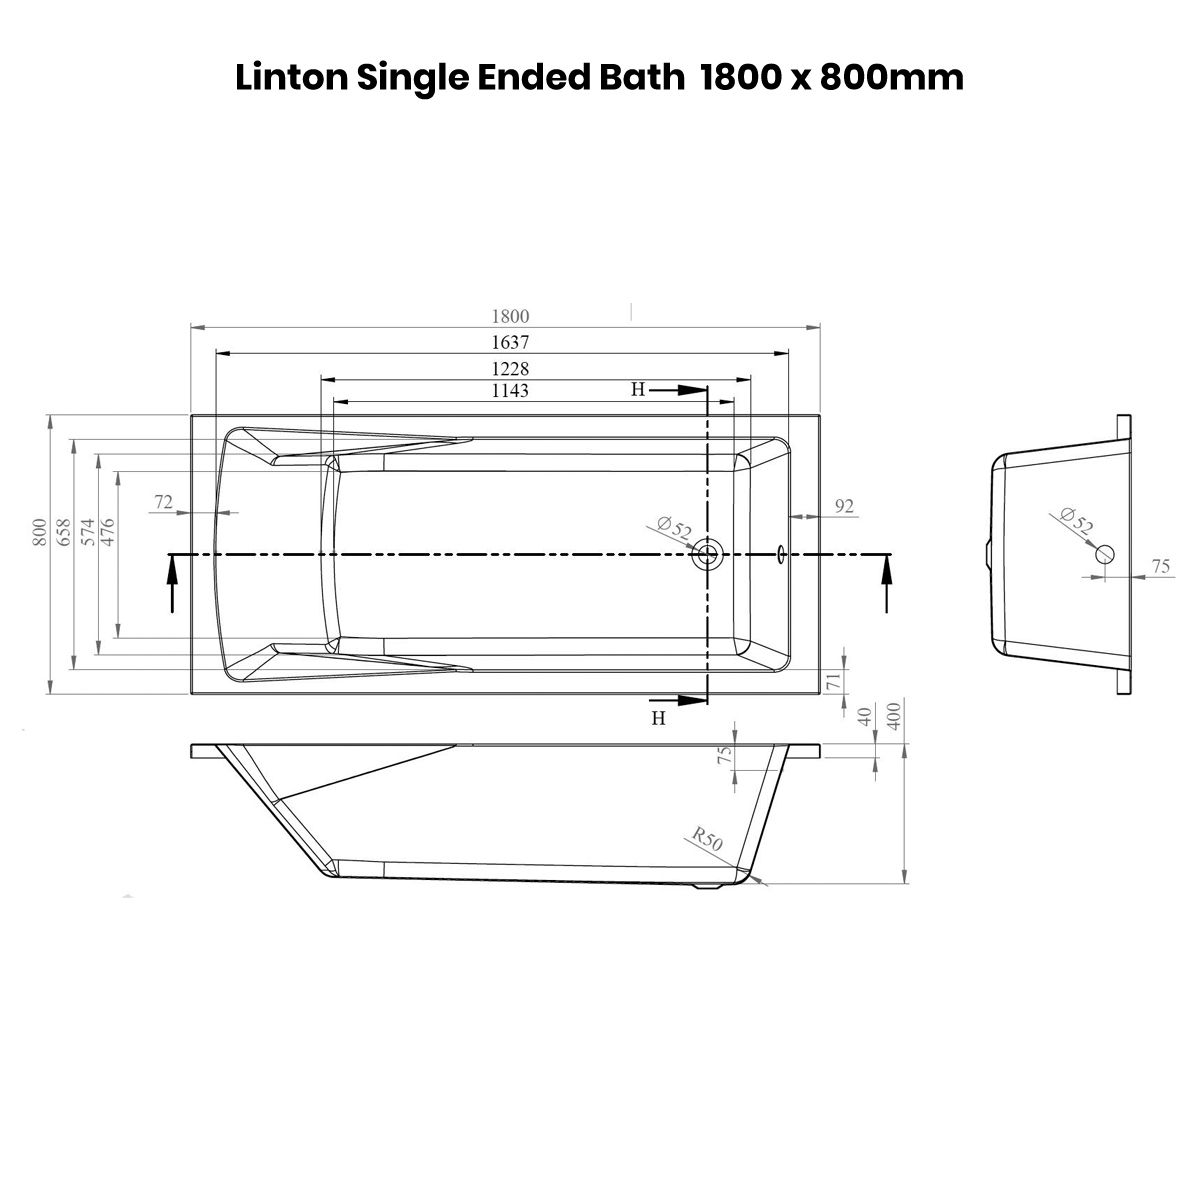 Nuie Linton Single Ended Bath 1800 x 800mm Dimensions